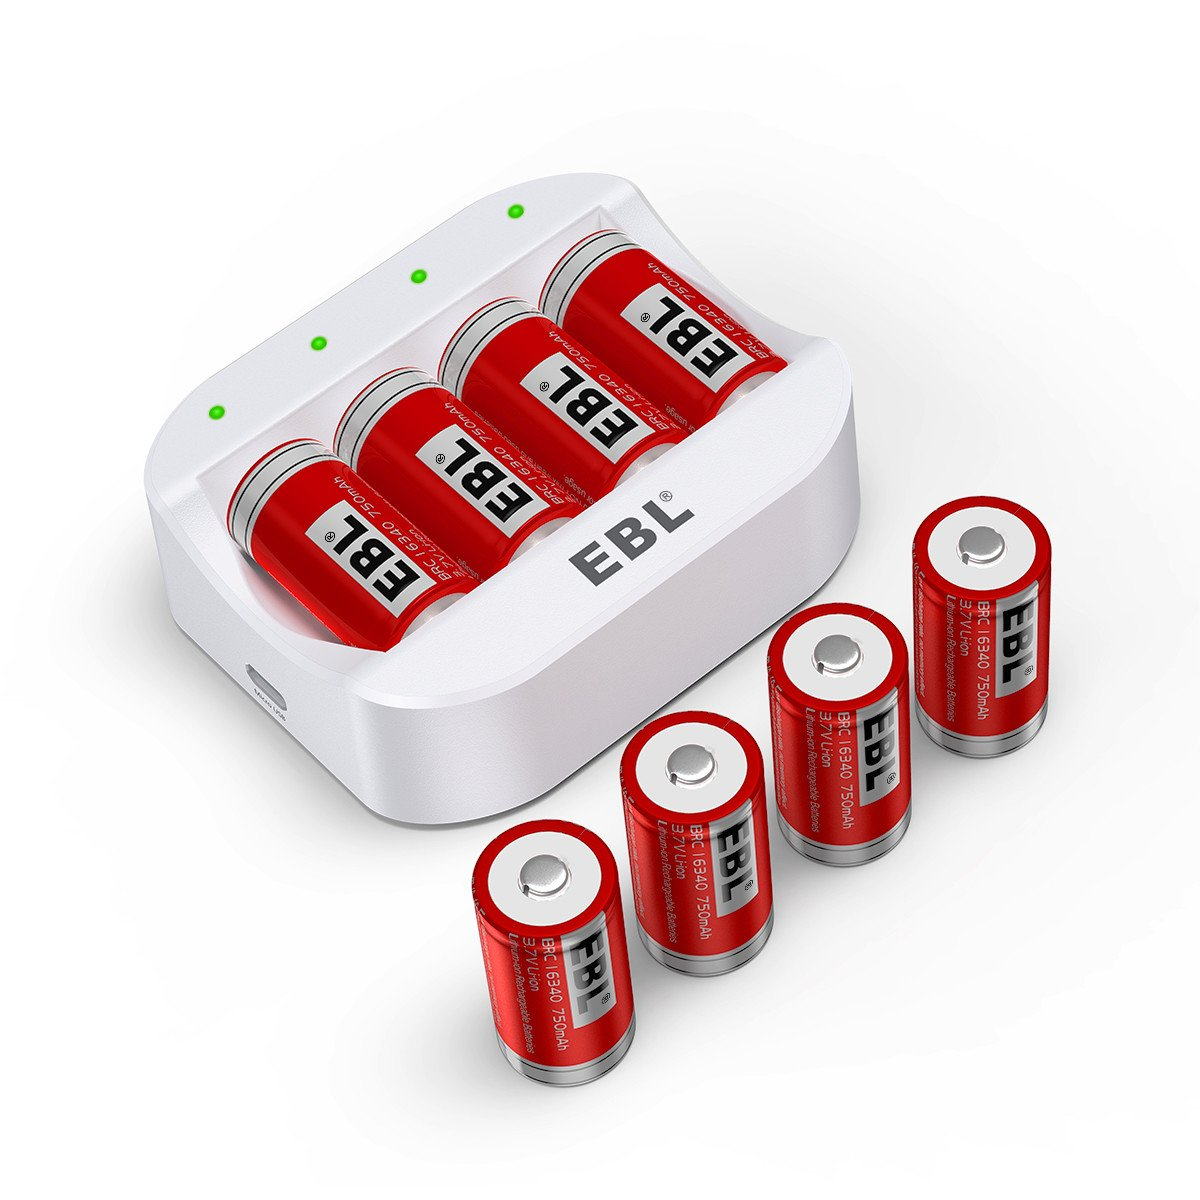 EBL RCR123A Rechargeable Batteries (8 Counts) 750mAh and Arlo Battery Charger - Ultra Fit for Arlo VMC3030 VMK3200 VMS3330 3430 3530 Wireless Security Cameras